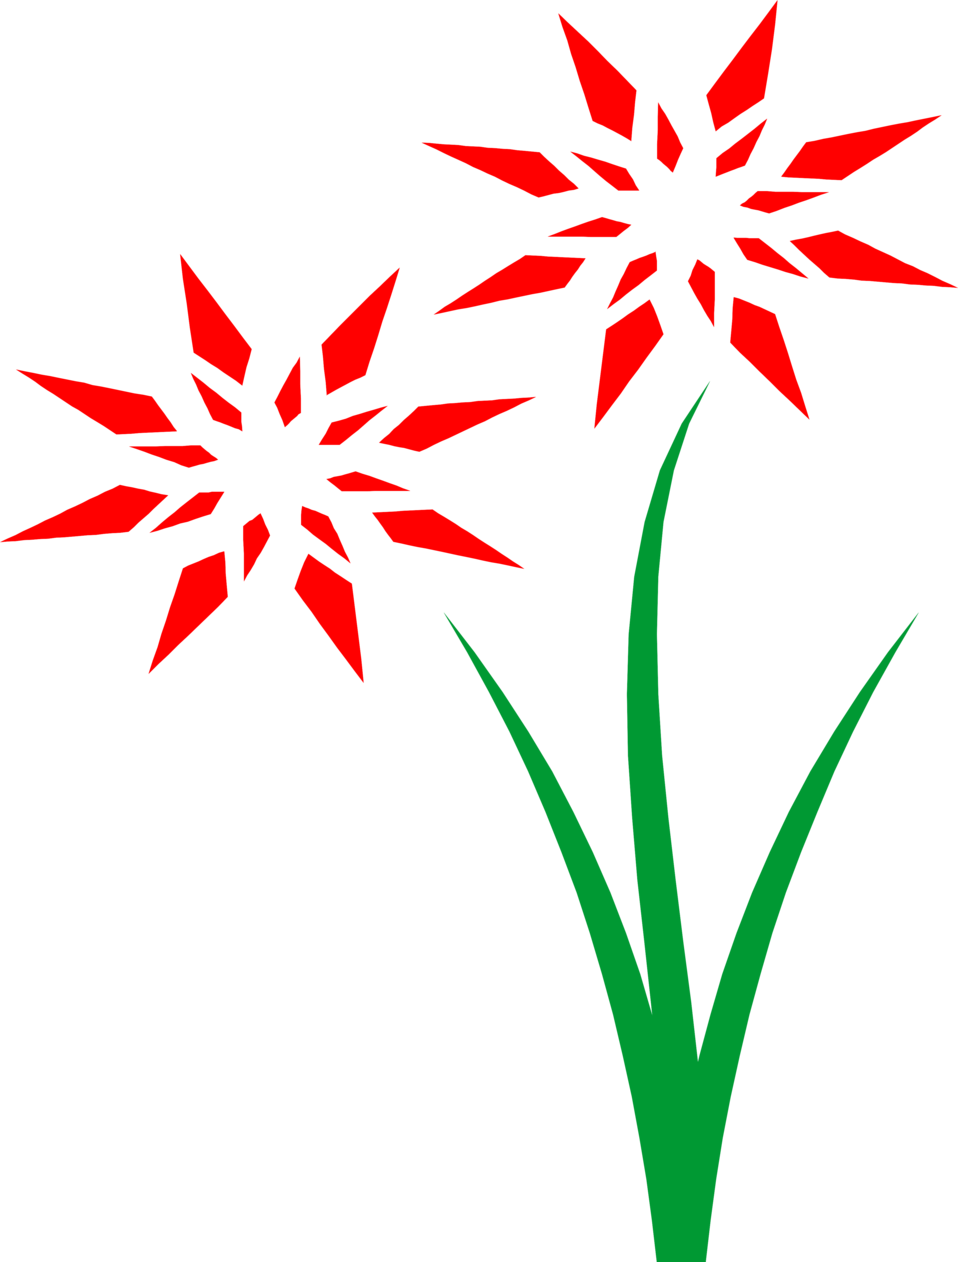 Red free stock photo. Flowers clipart landscape